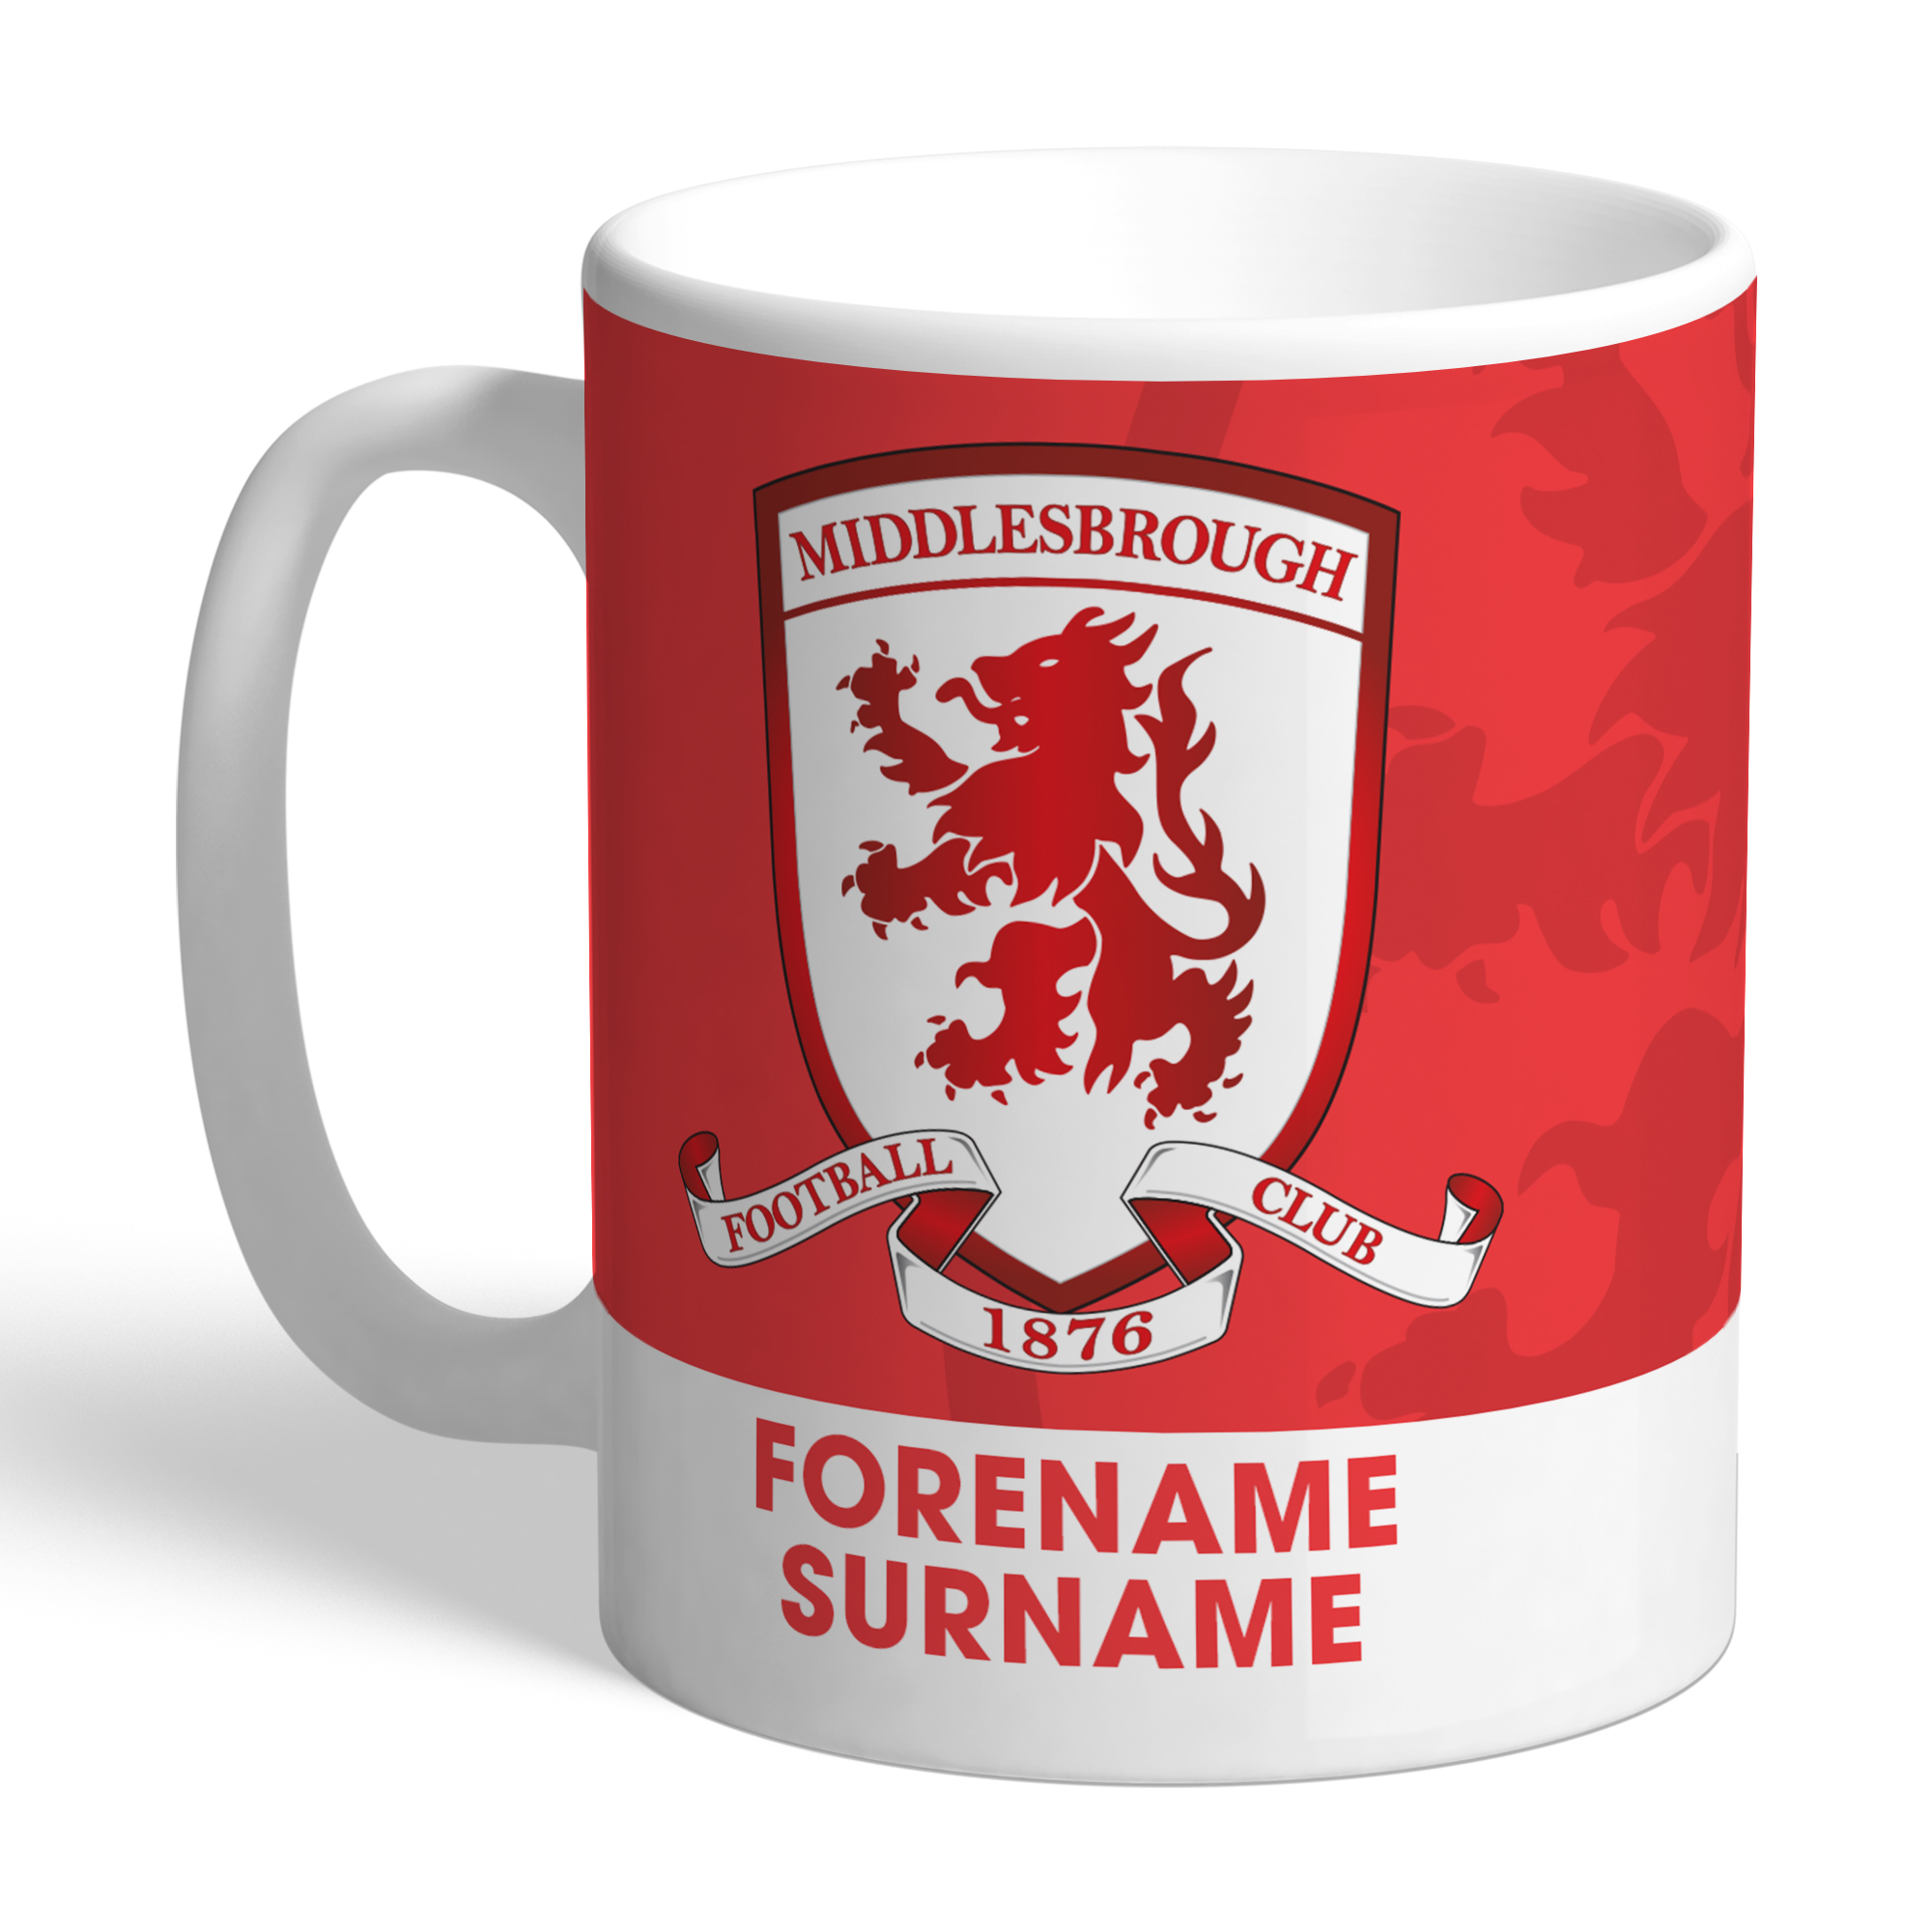 Middlesbrough Bold Crest Mug